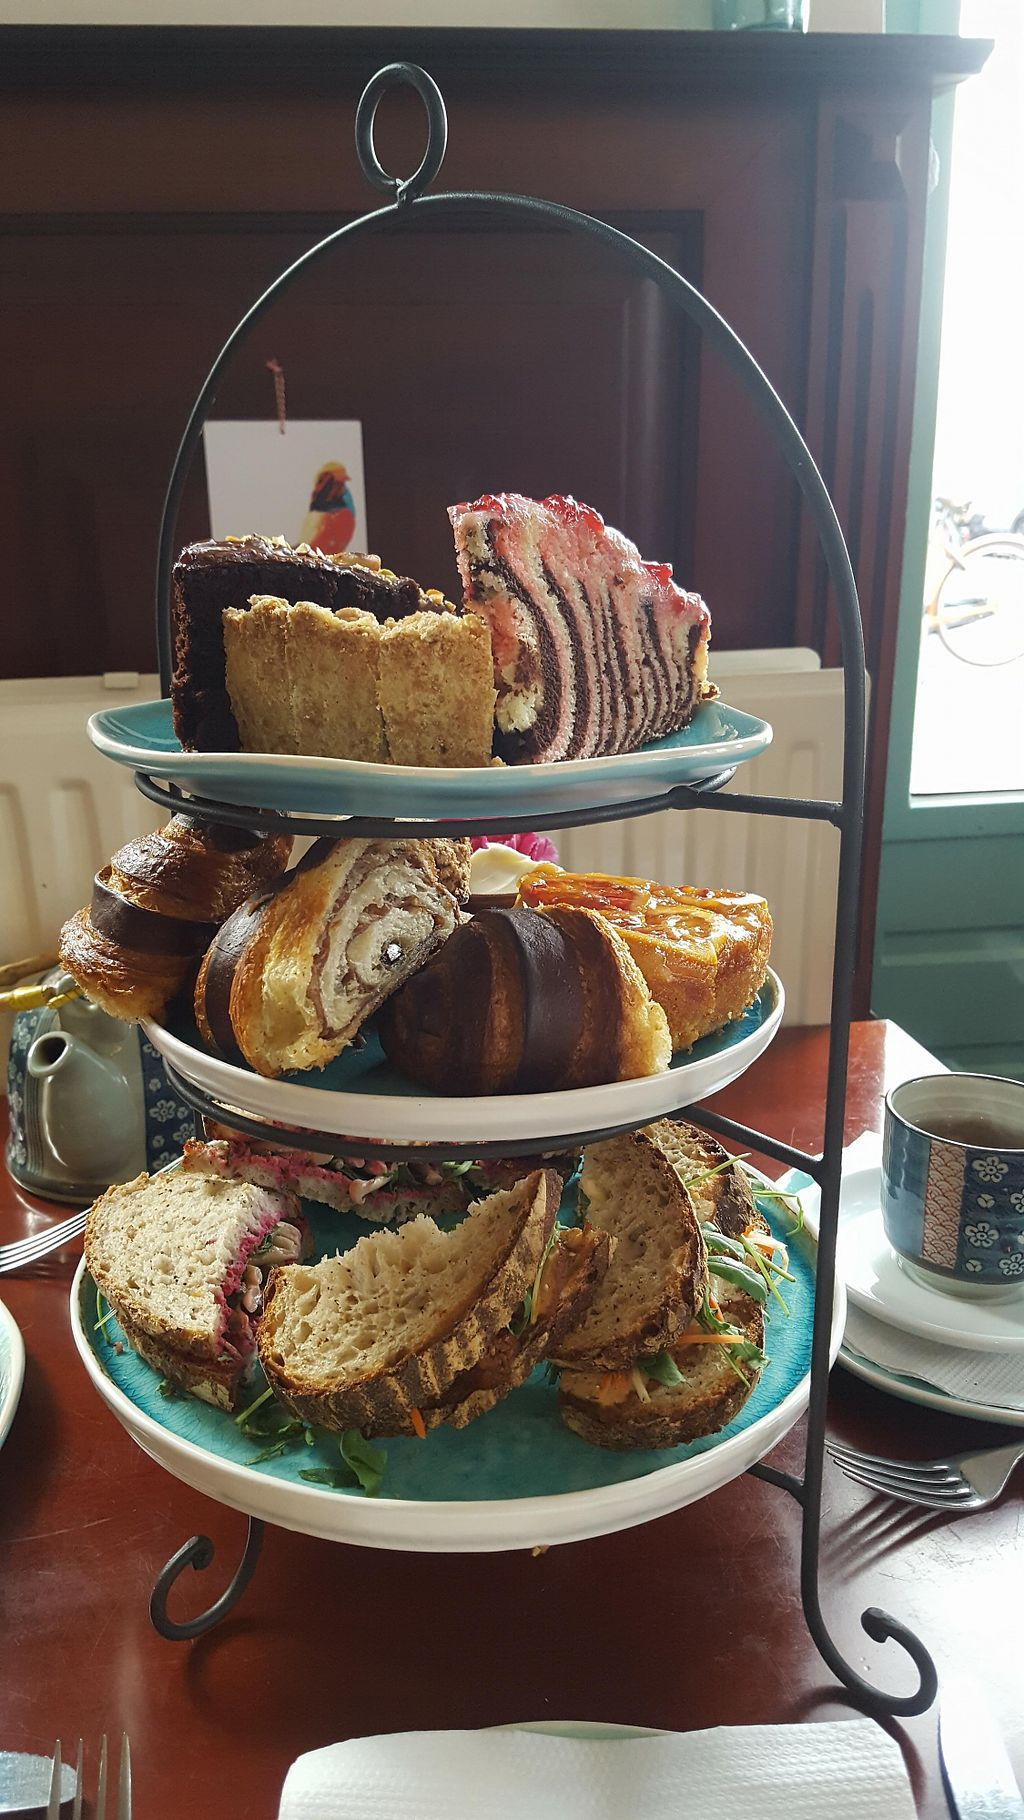 """Photo of Koffie ende Koeck  by <a href=""""/members/profile/happyowl"""">happyowl</a> <br/>High tea <br/> May 23, 2018  - <a href='/contact/abuse/image/46128/403893'>Report</a>"""